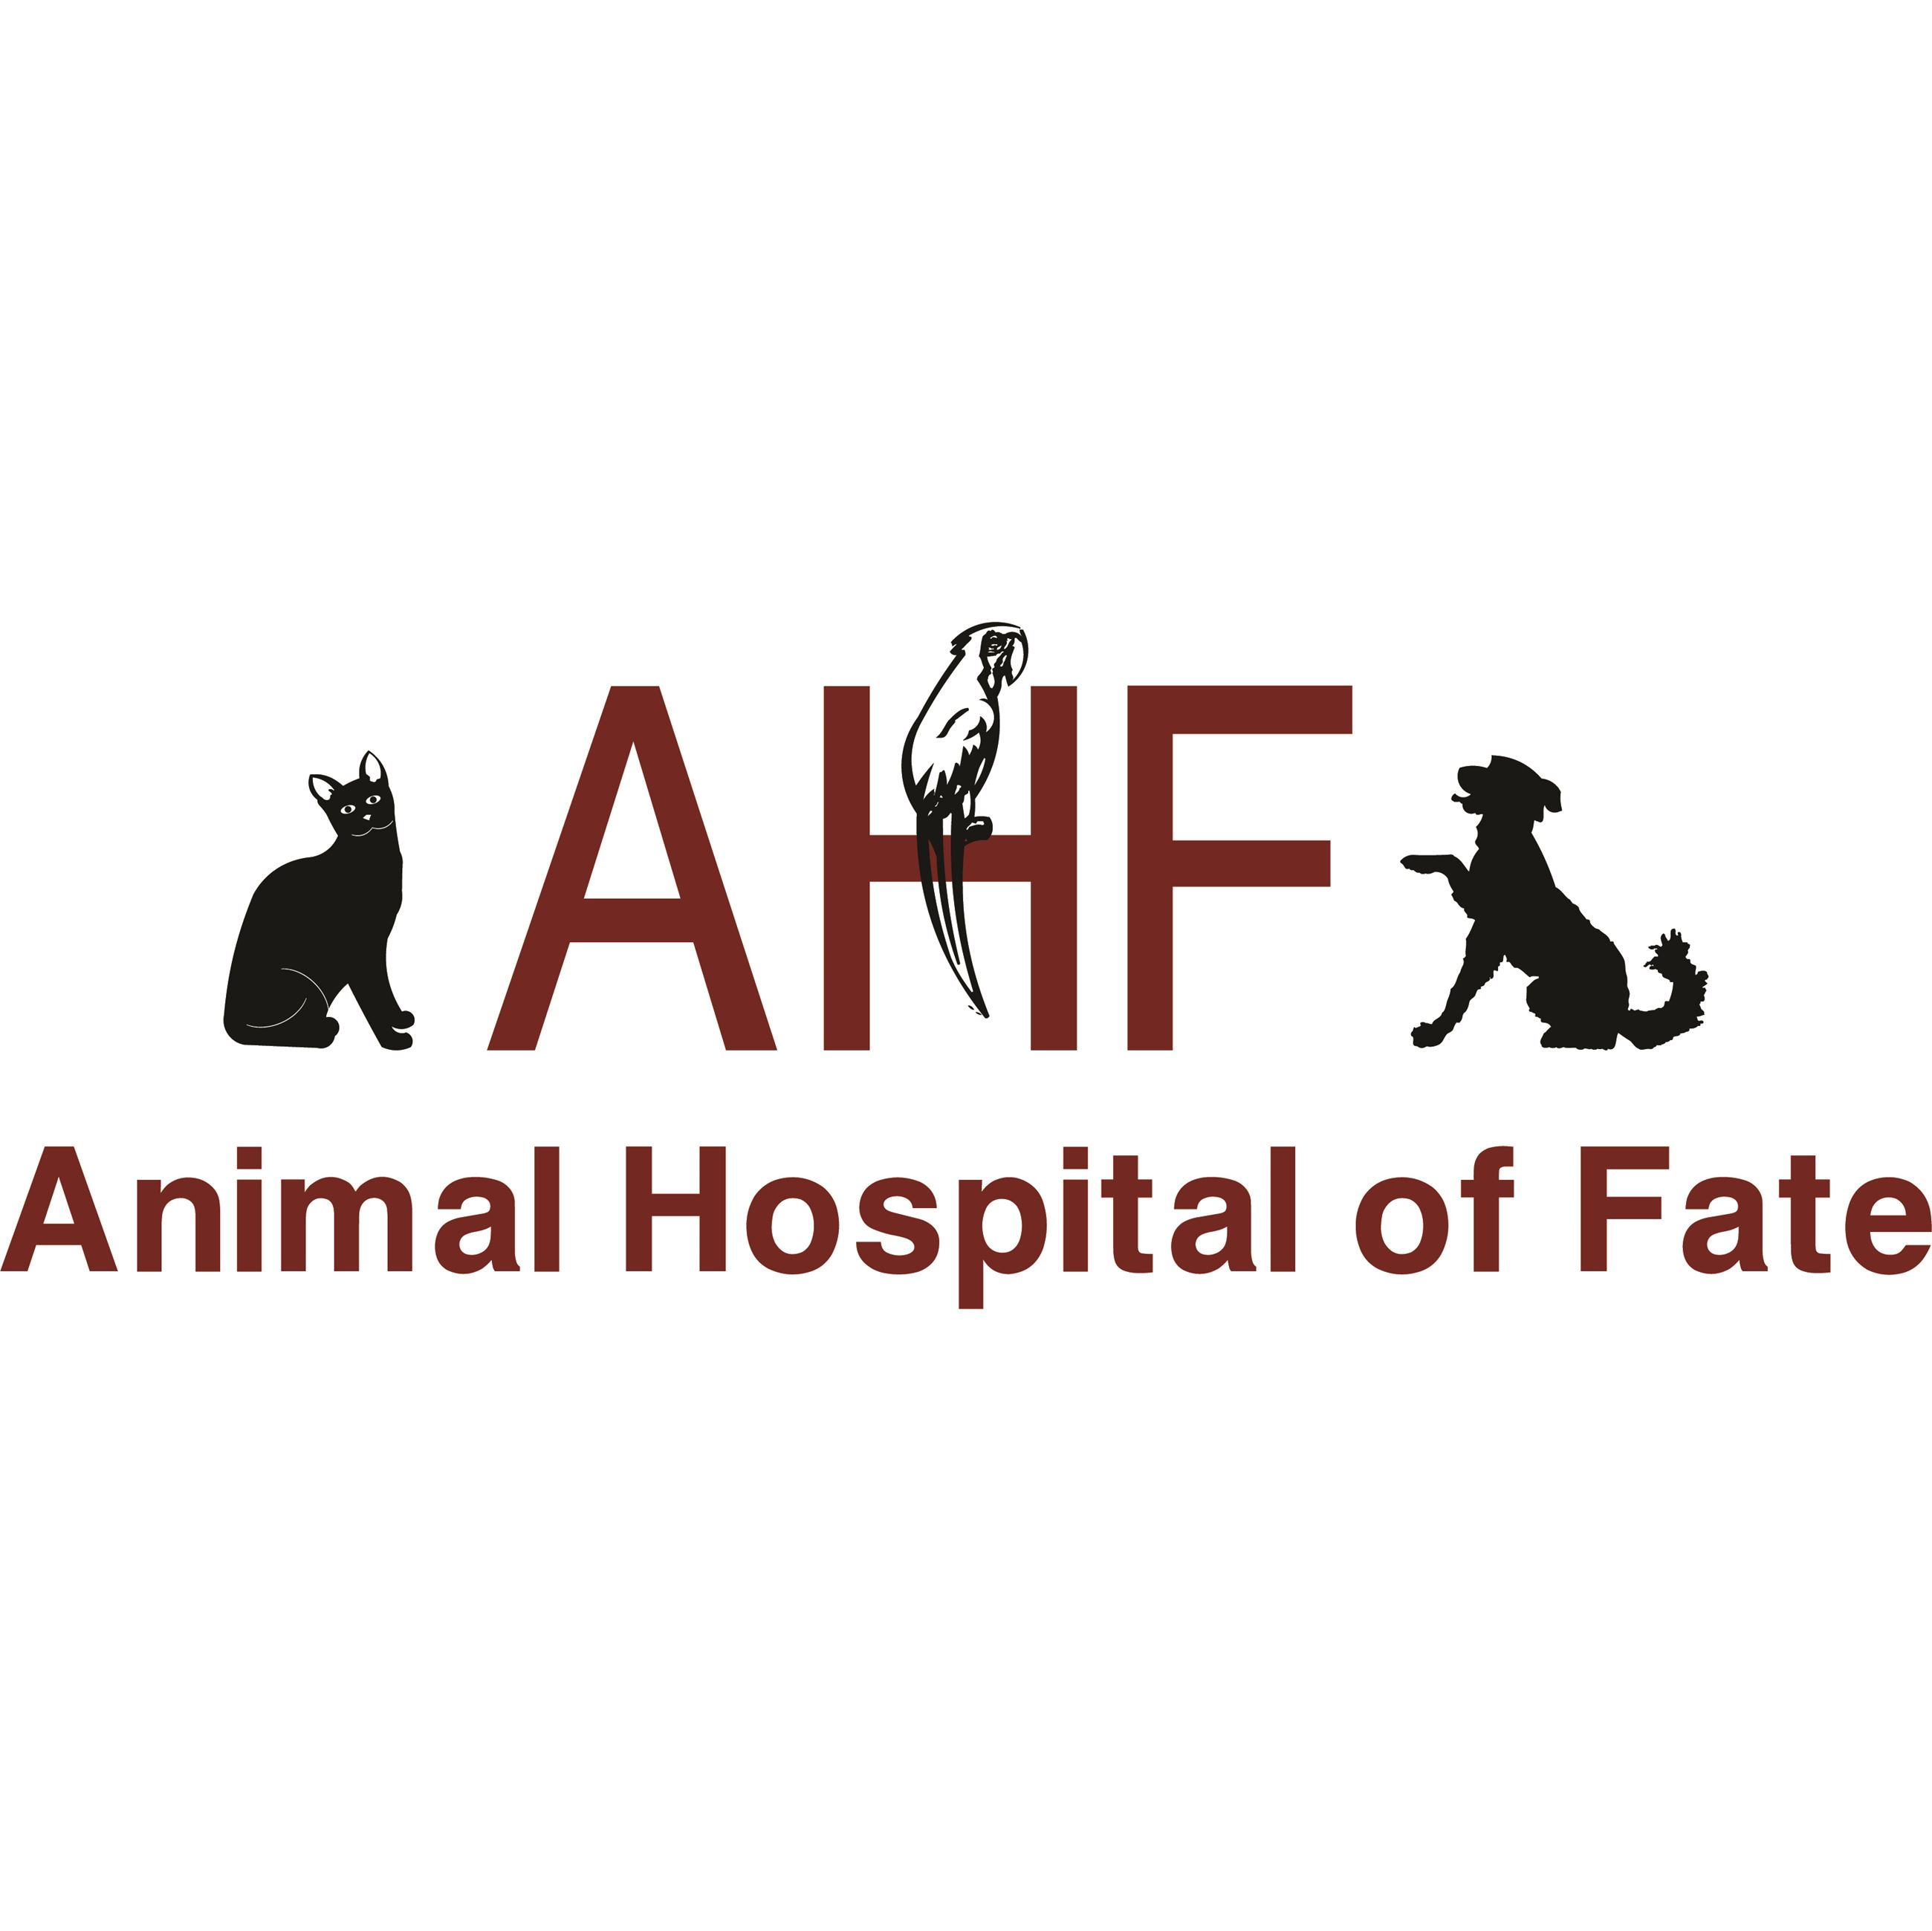 Animal Hospital of Fate logo with a cat bird and dog